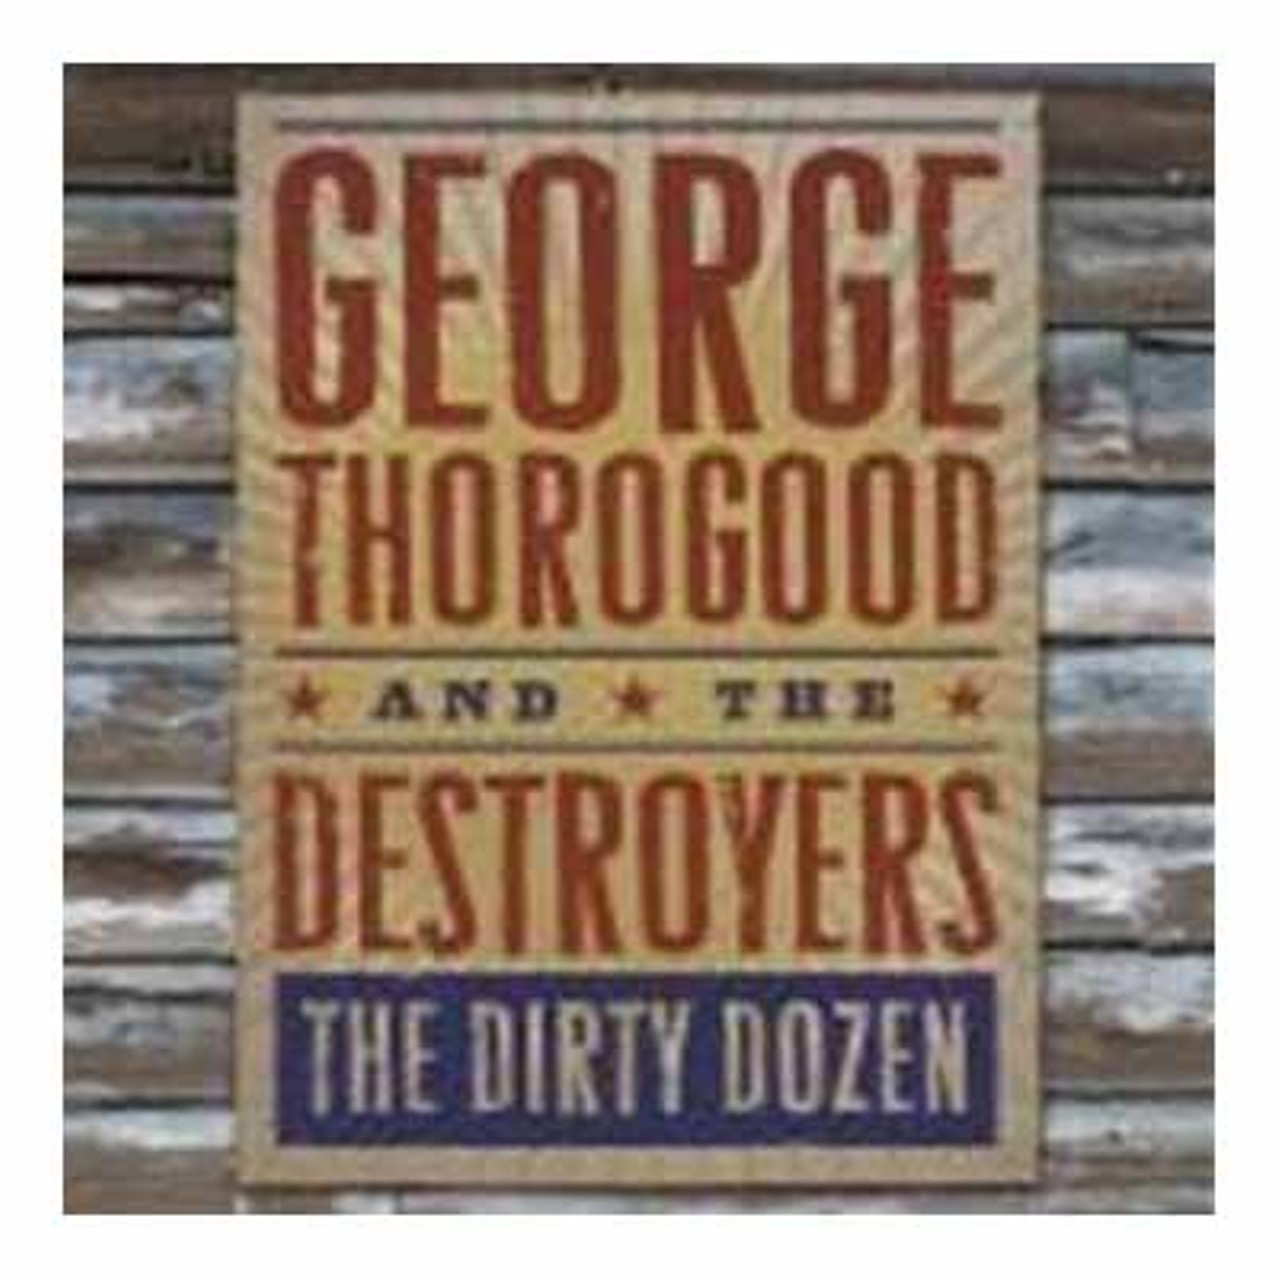 Cd Review George Thorogood And The Destroyers The Dirty Dozen